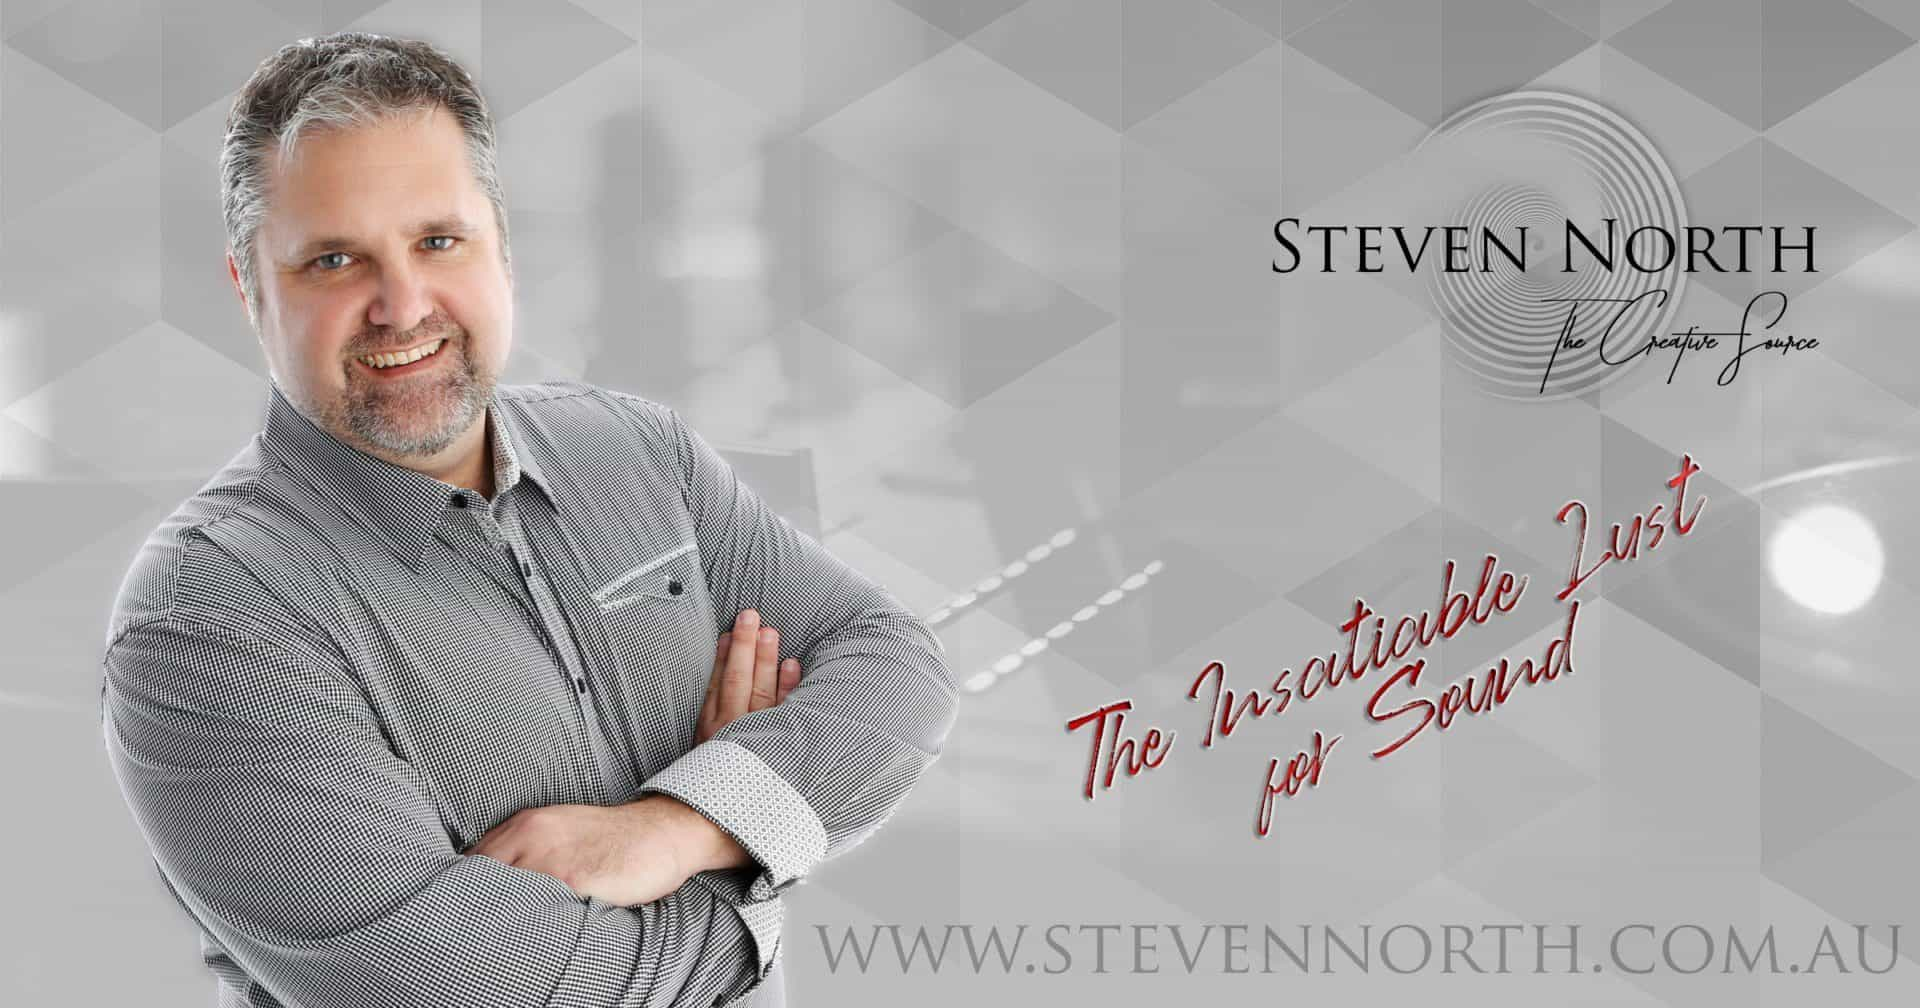 The Insatiable Lust for Sound with Steven North